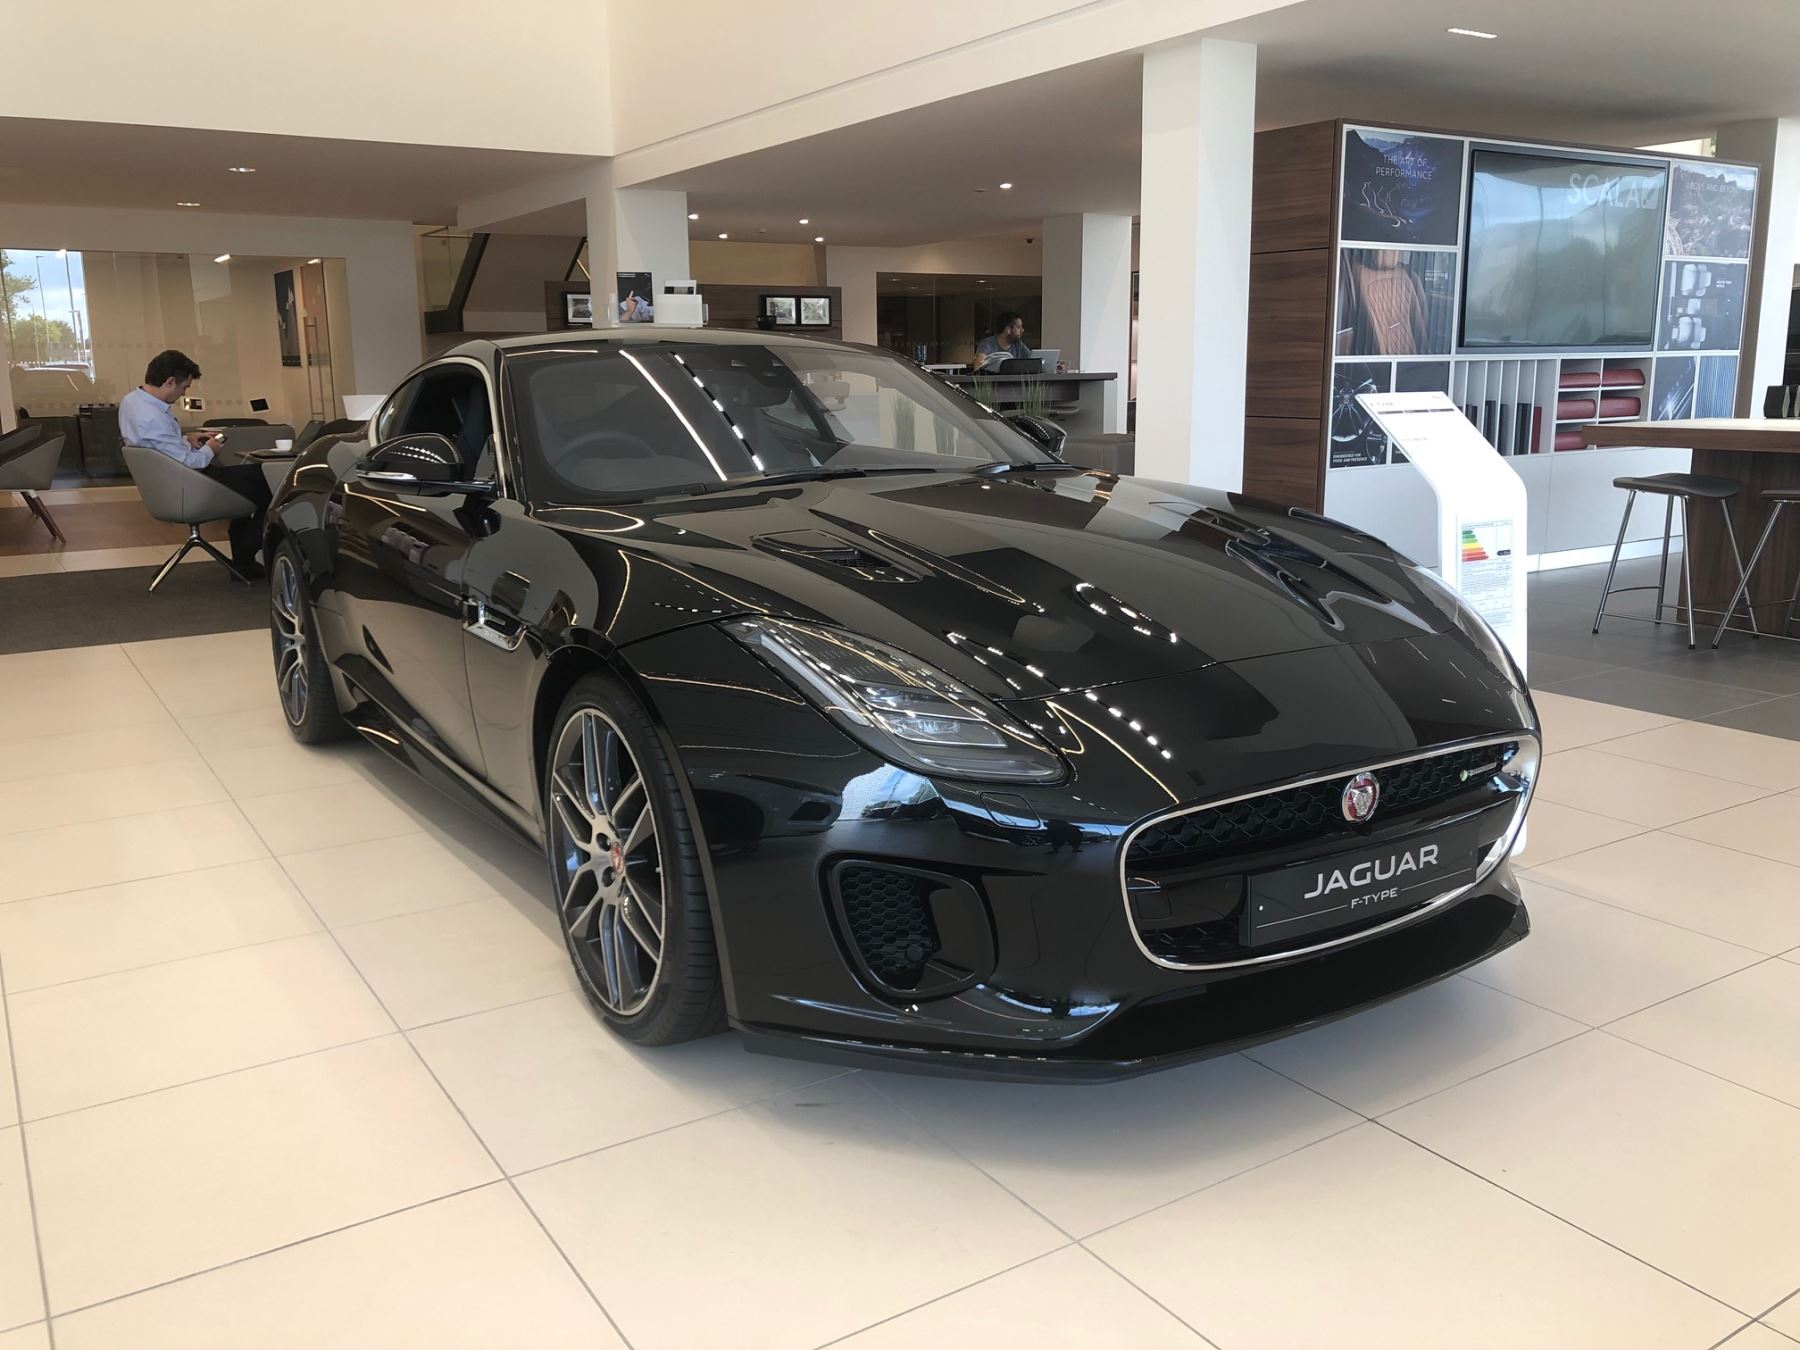 Jaguar F-TYPE 3.0 [380] Supercharged V6 R-Dynamic AWD image 2